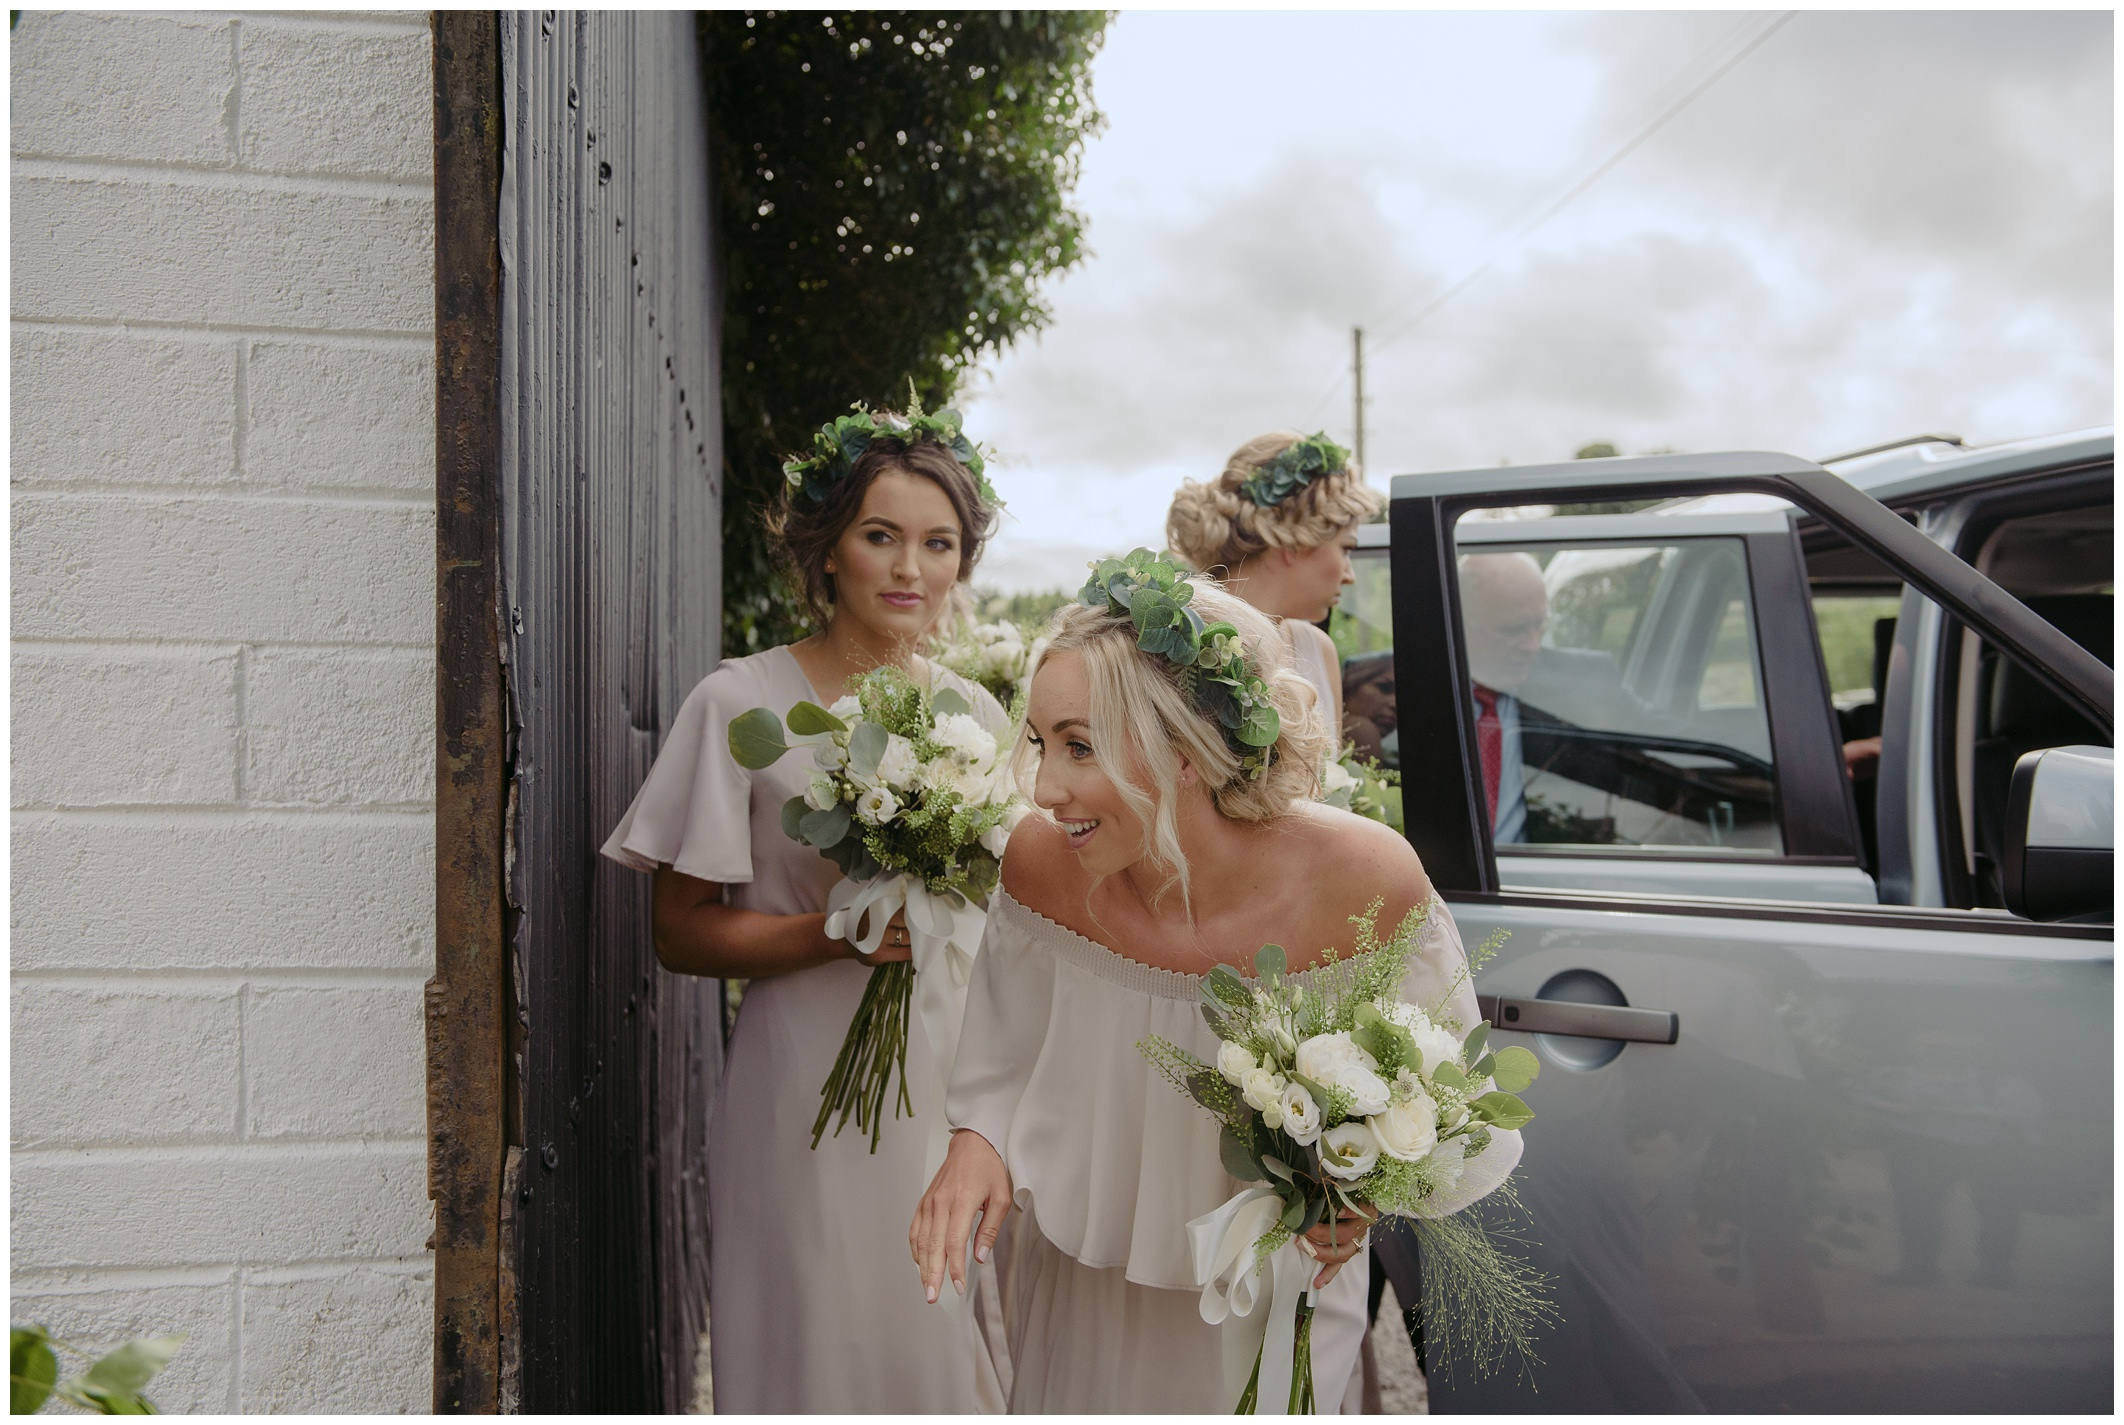 tara_neil_the_mill_alternative_quirky_wedding_jude_browne_photography_0067.jpg